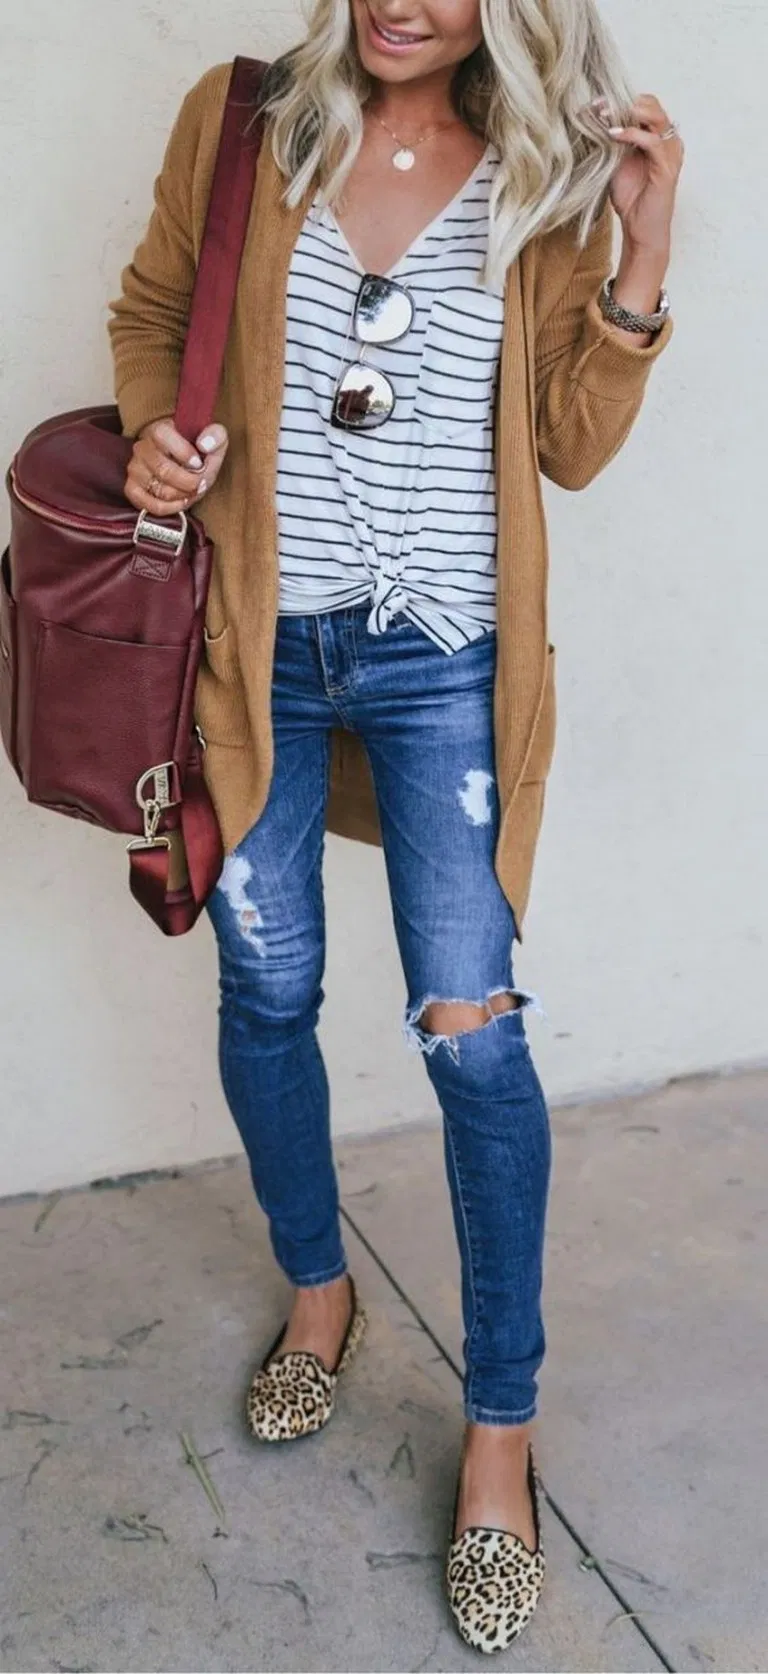 √45 Gorgeous Cardigan Outfit Ideas For Fall 2019 #cardigan #cardiganideas #fal…